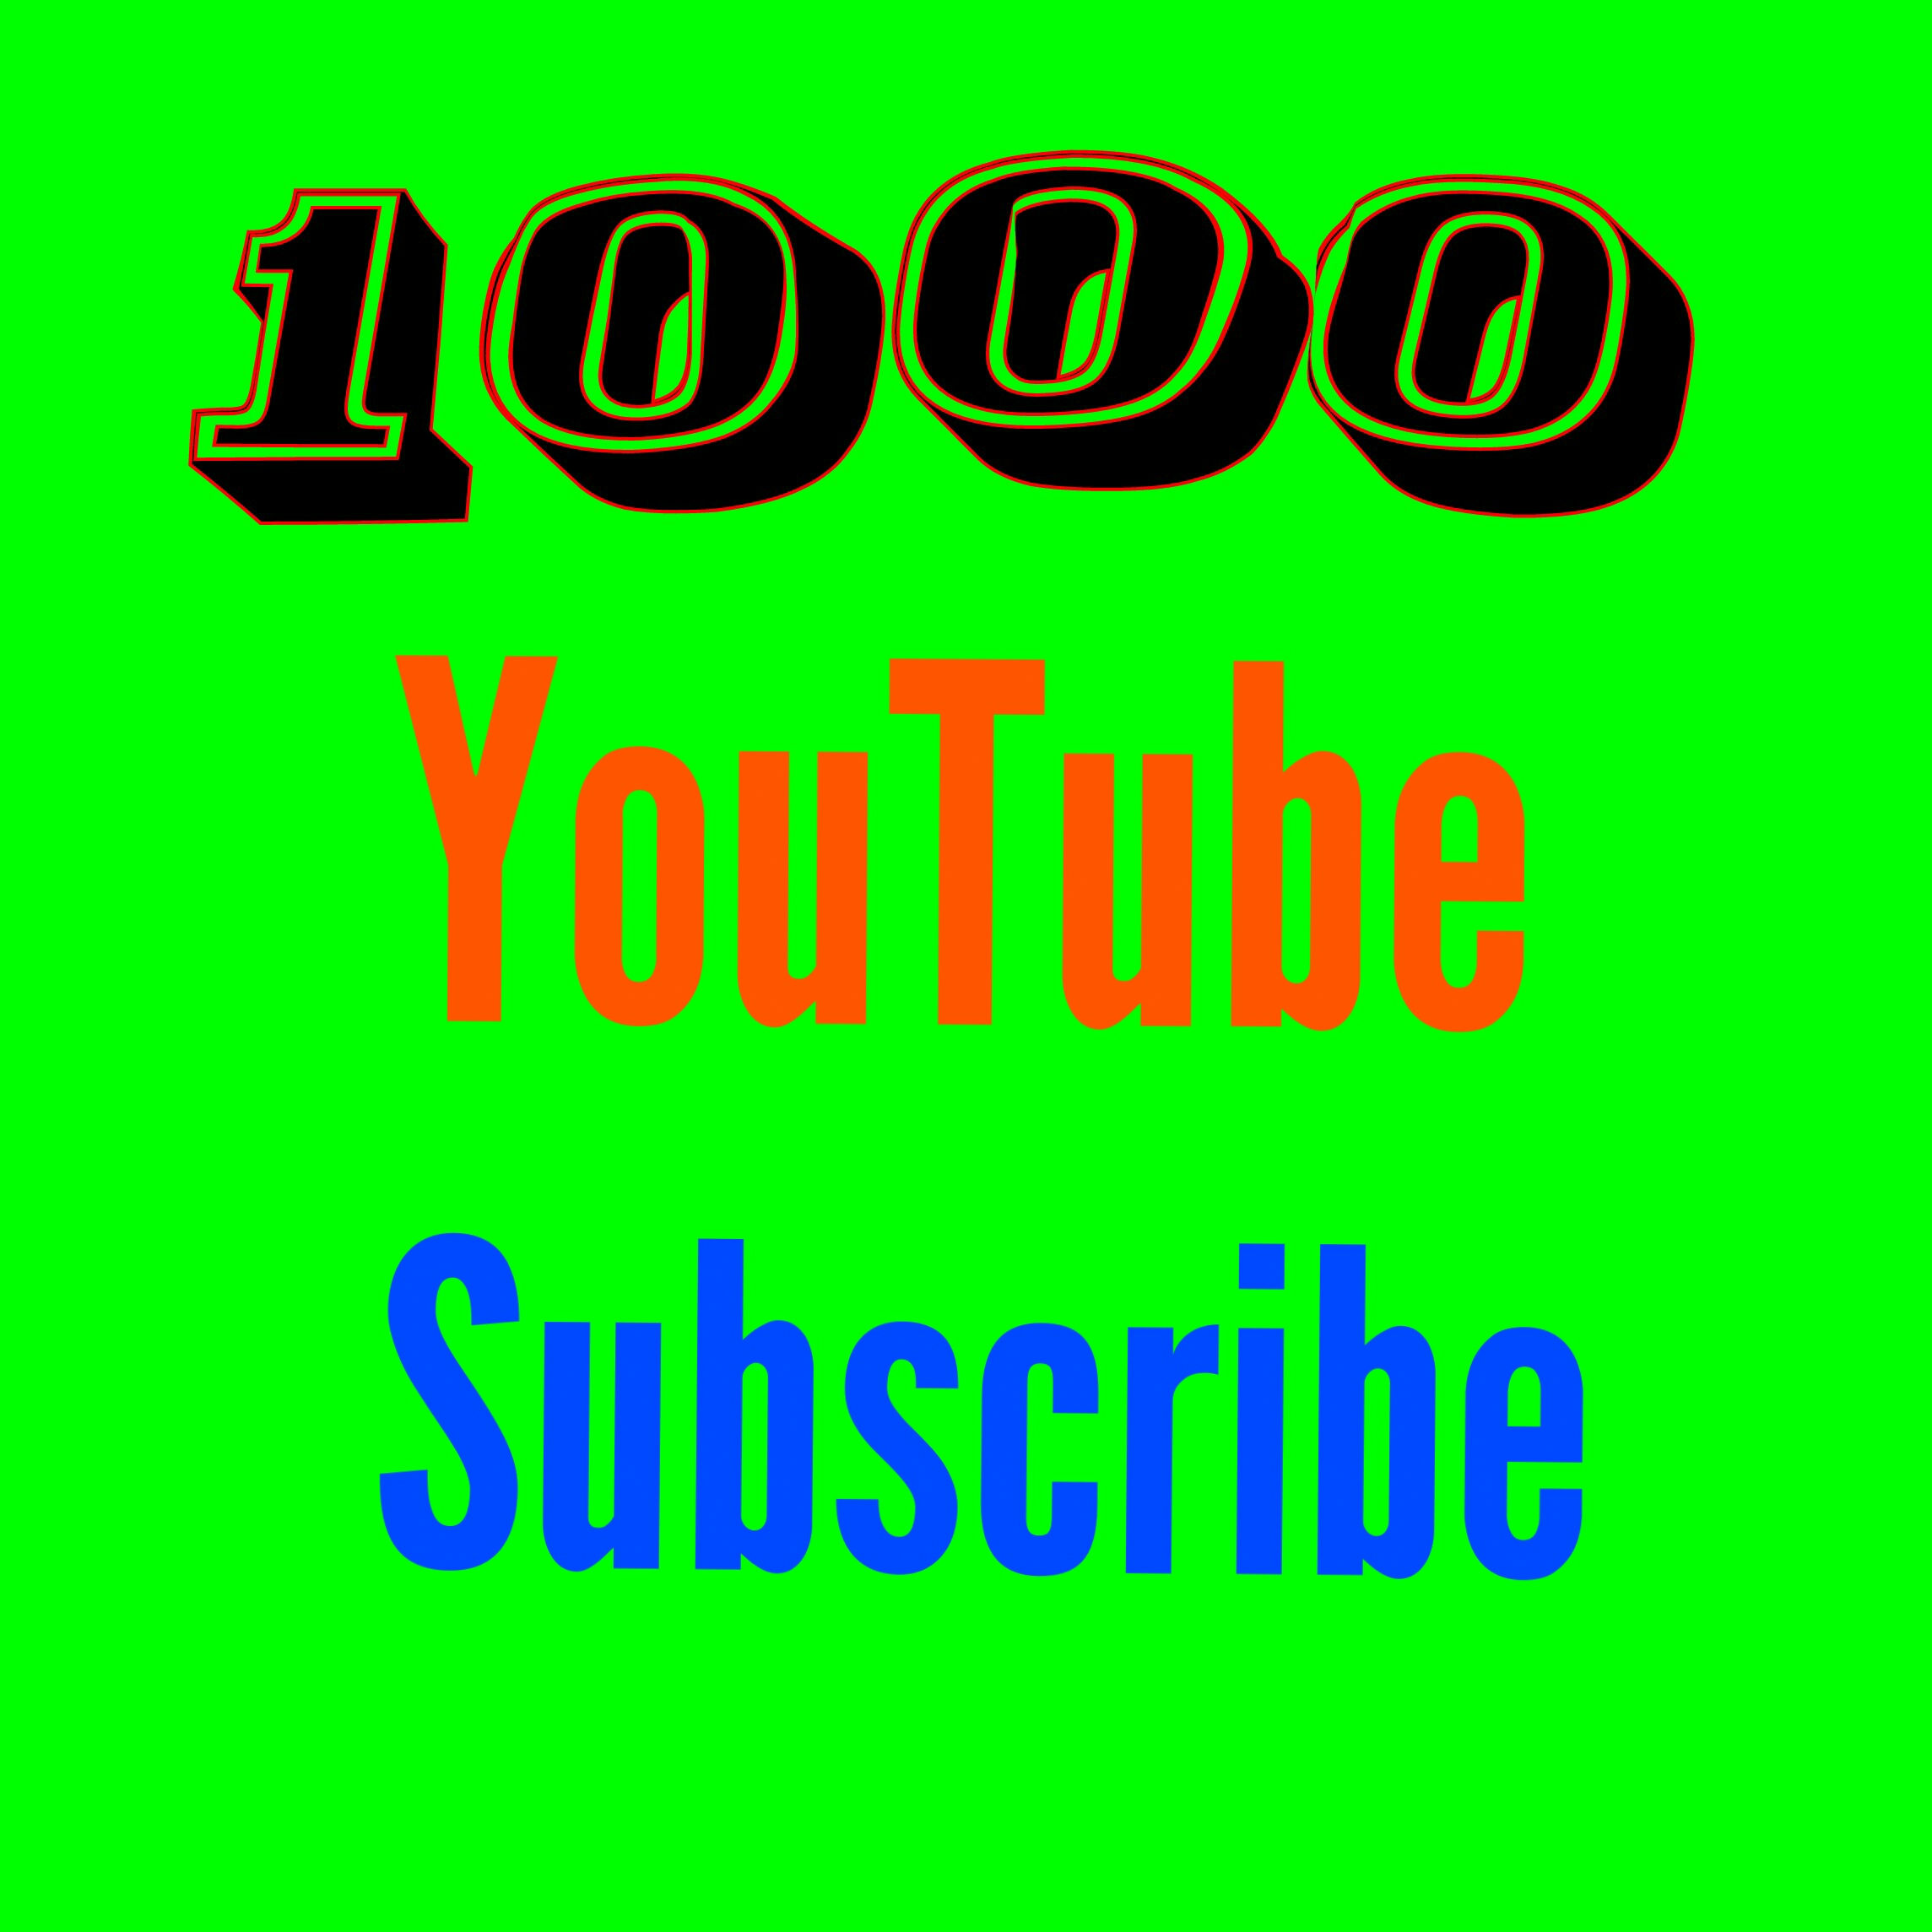 Active 1000 You'tube subs'cribe nondrop guaranteed